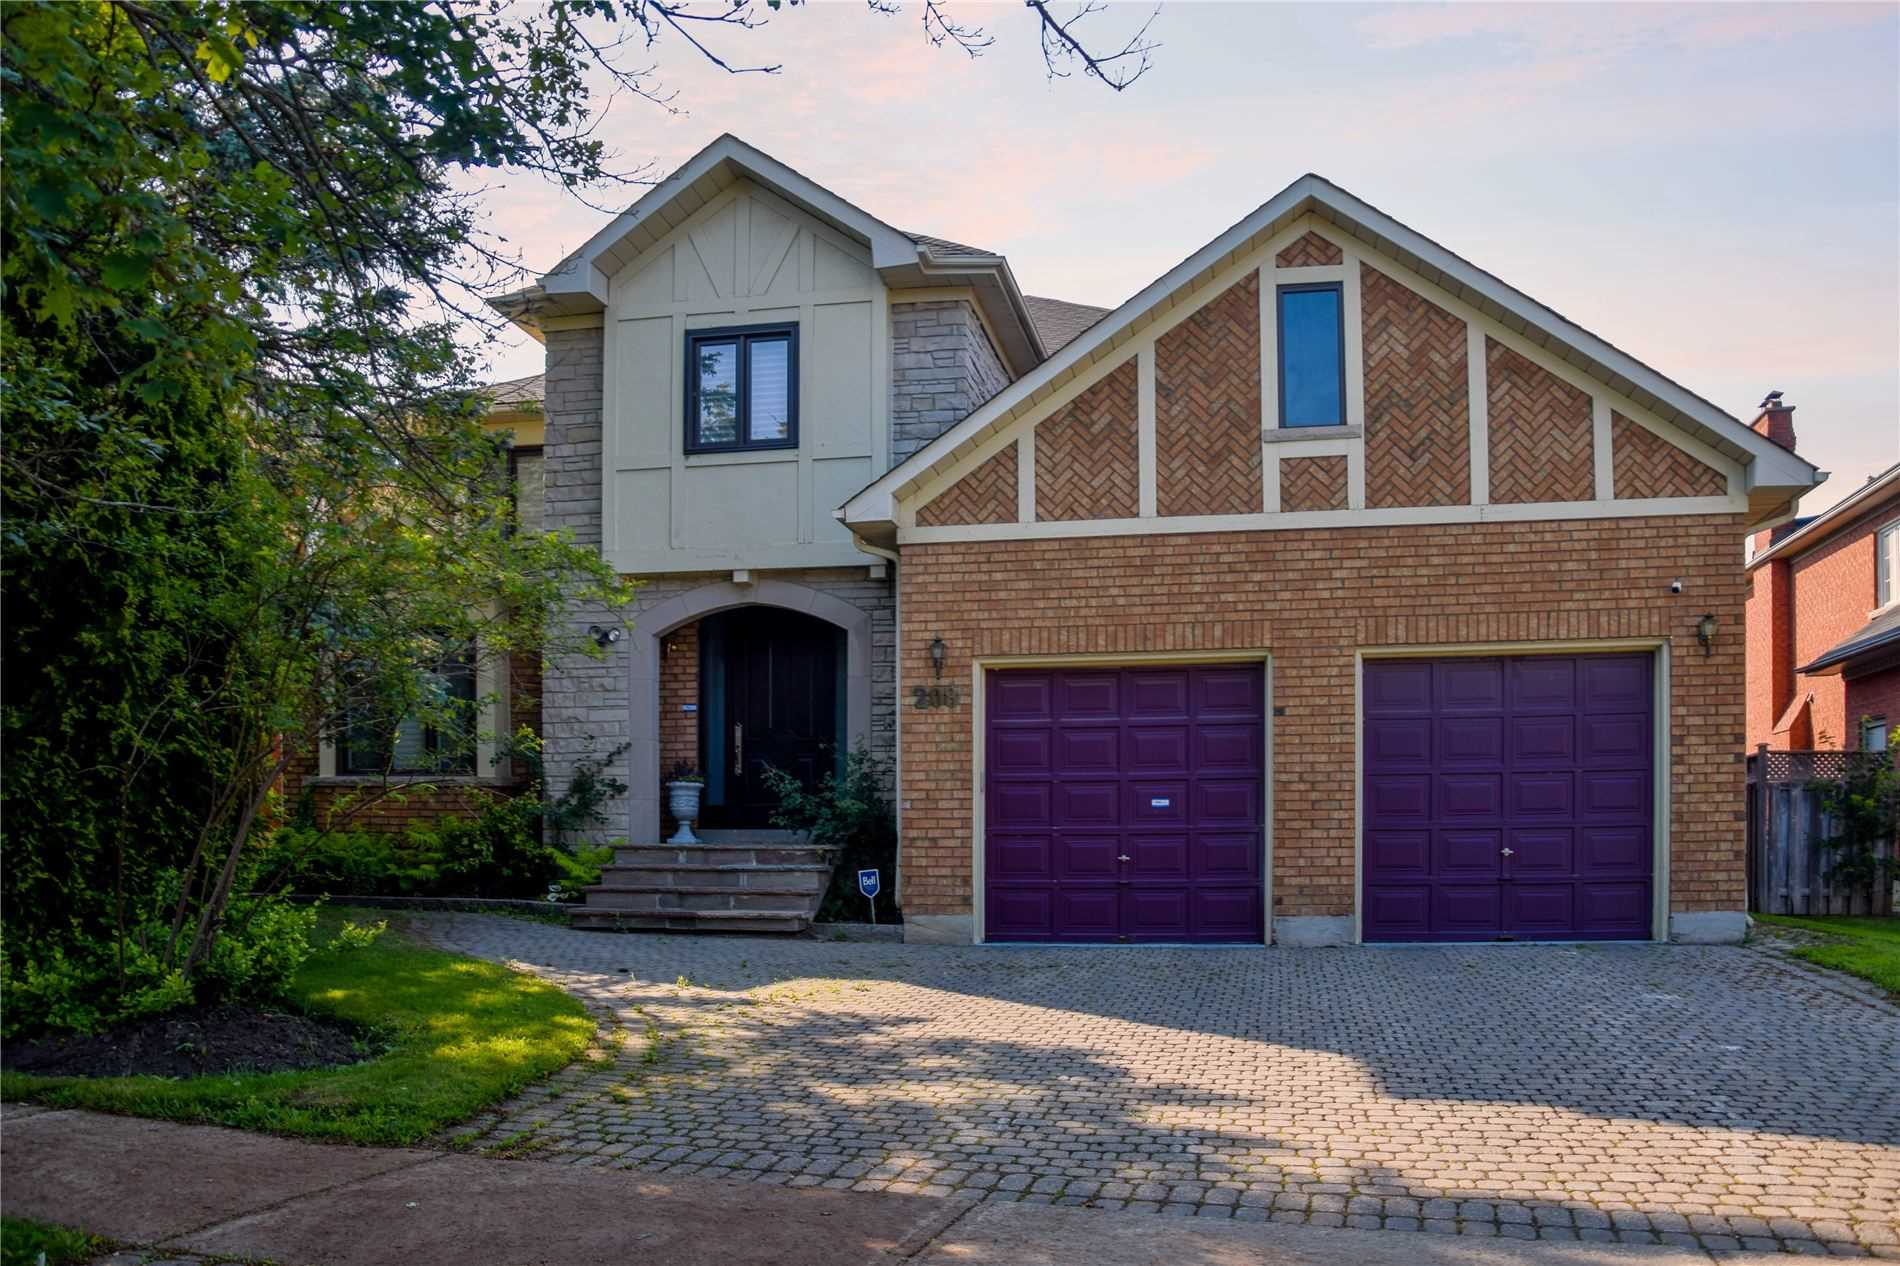 Detached house For Sale In Richmond Hill - 208 Strathearn Ave, Richmond Hill, Ontario, Canada L4B2S6 , 7 Bedrooms Bedrooms, ,5 BathroomsBathrooms,Detached,For Sale,Strathearn